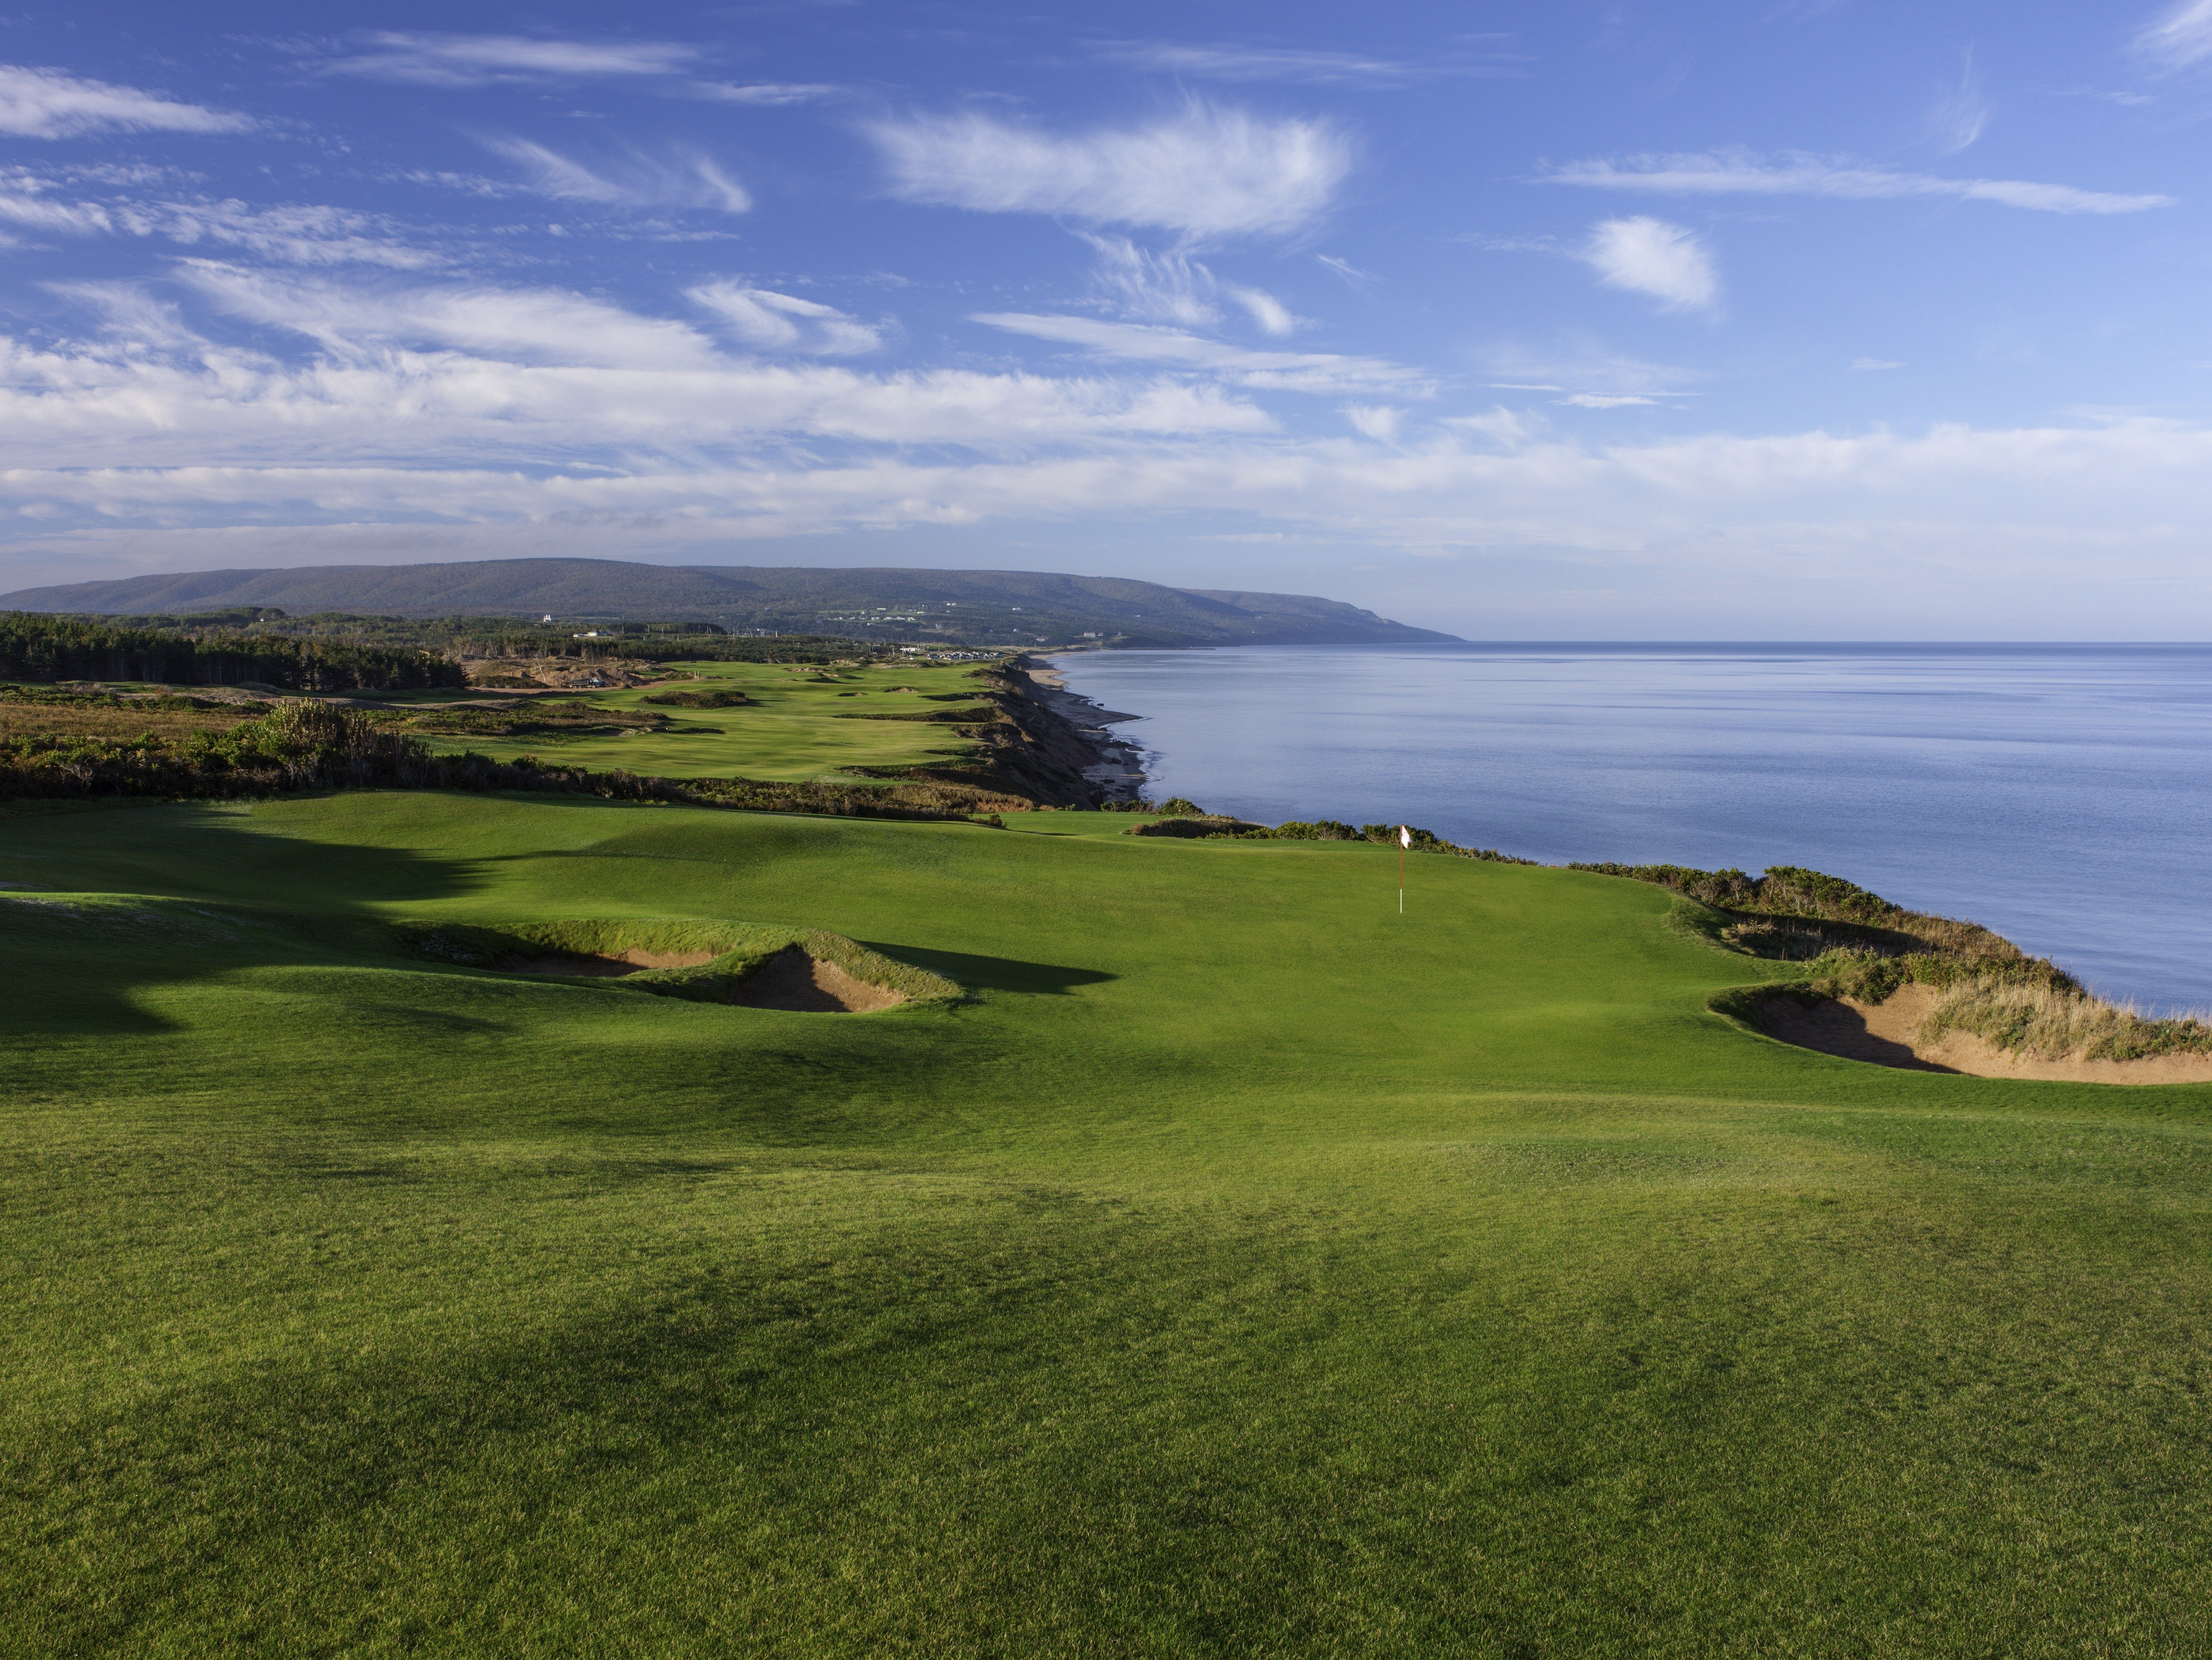 The breathtaking scenery at Cabot Cliffs (17th hole shown) is strikingly similar to the views found a continent away on the Monterey Peninsula.